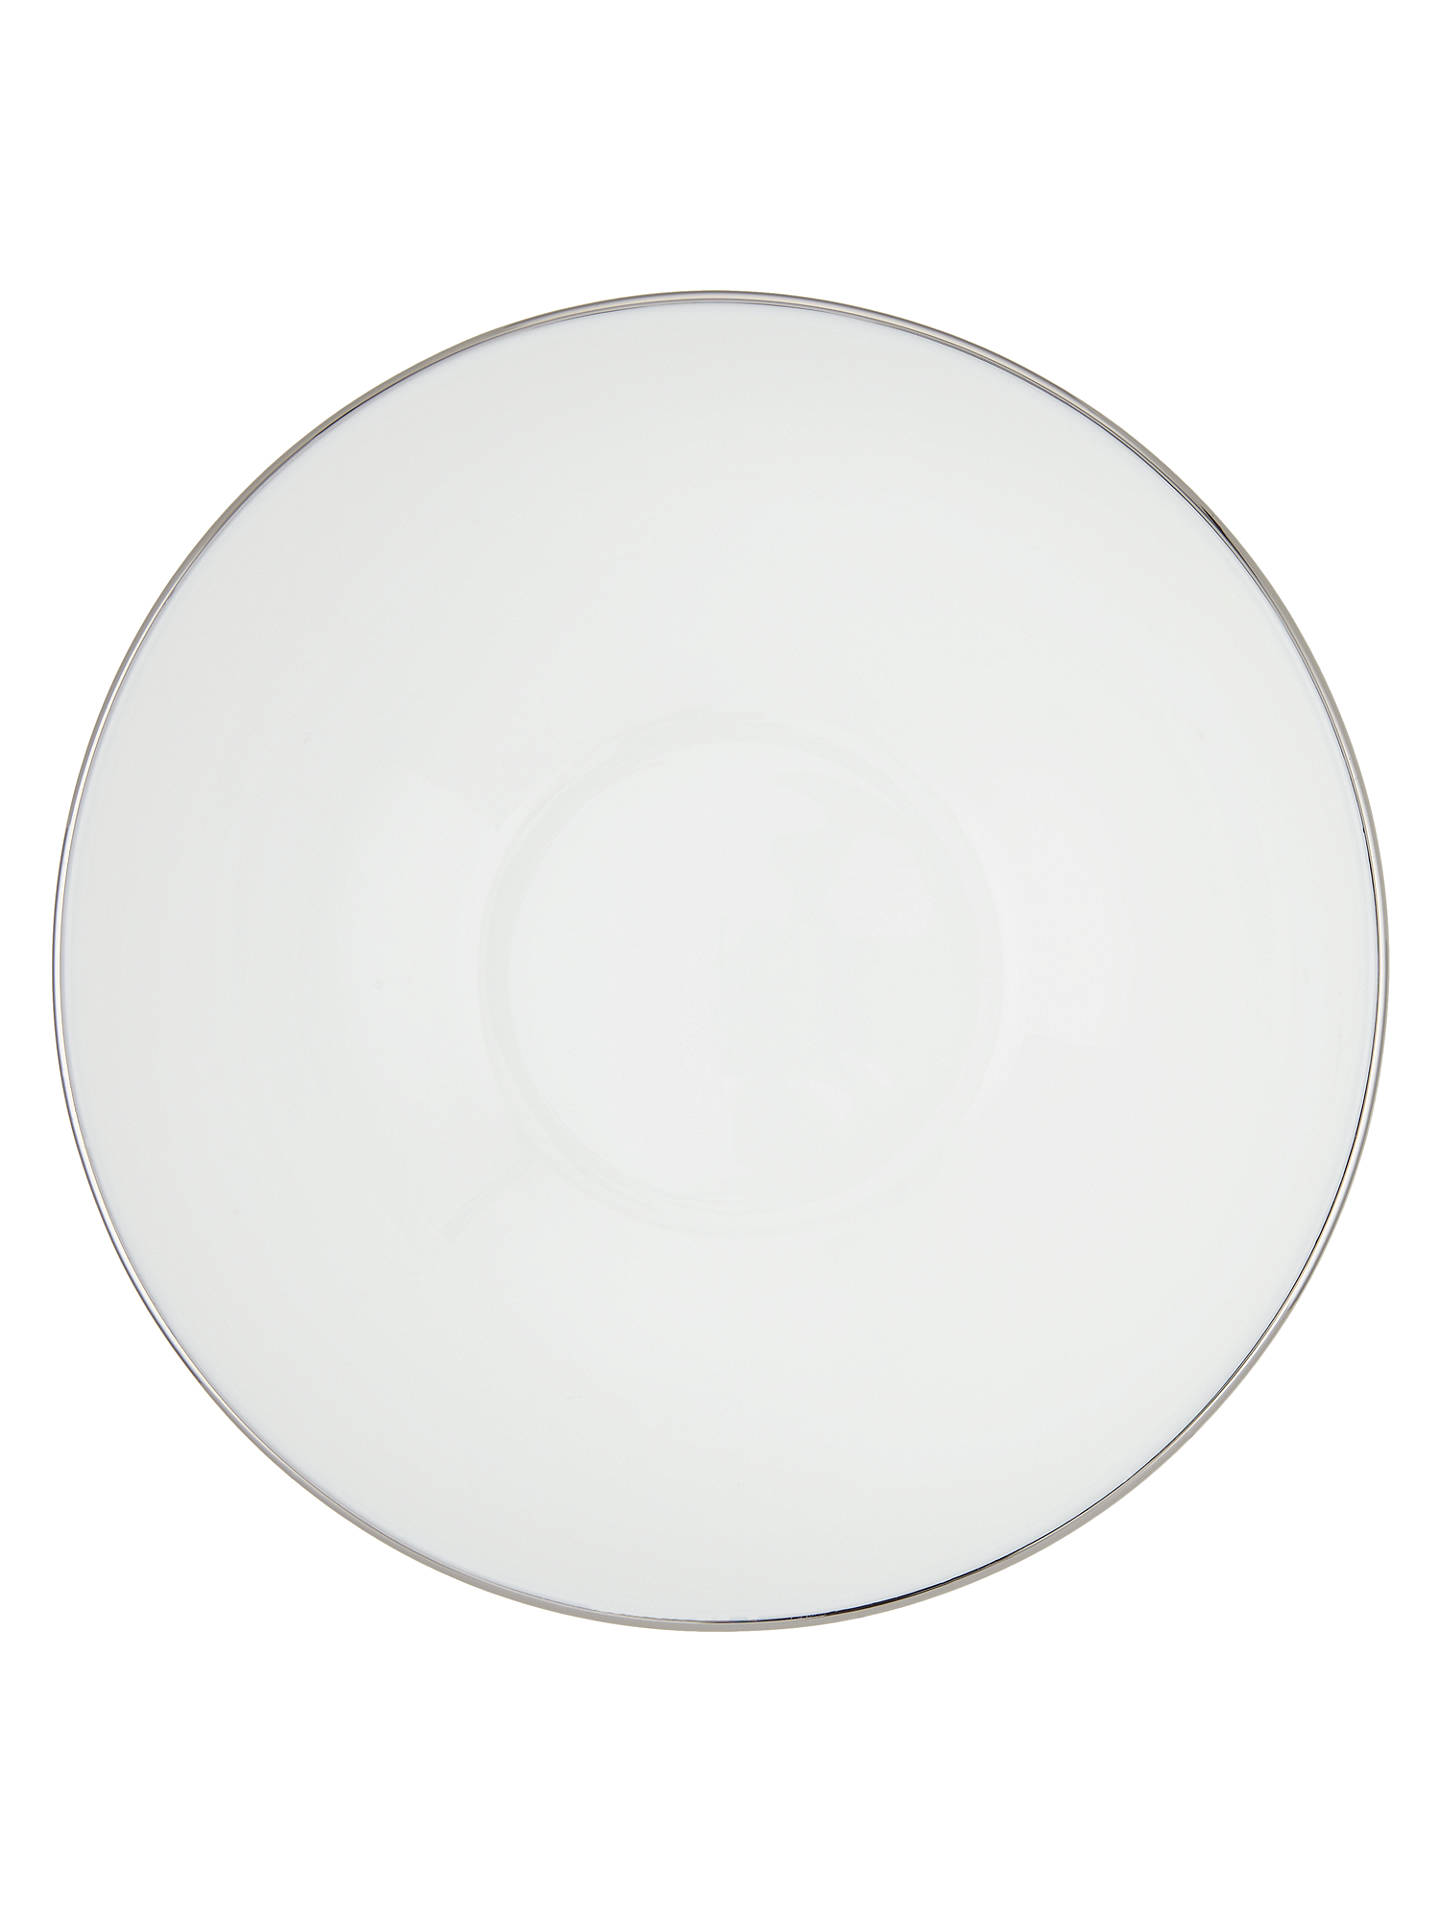 BuyJohn Lewis & Partners Contour Platinum Bone China Cereal Bowl, 15cm, White/Silver Online at johnlewis.com